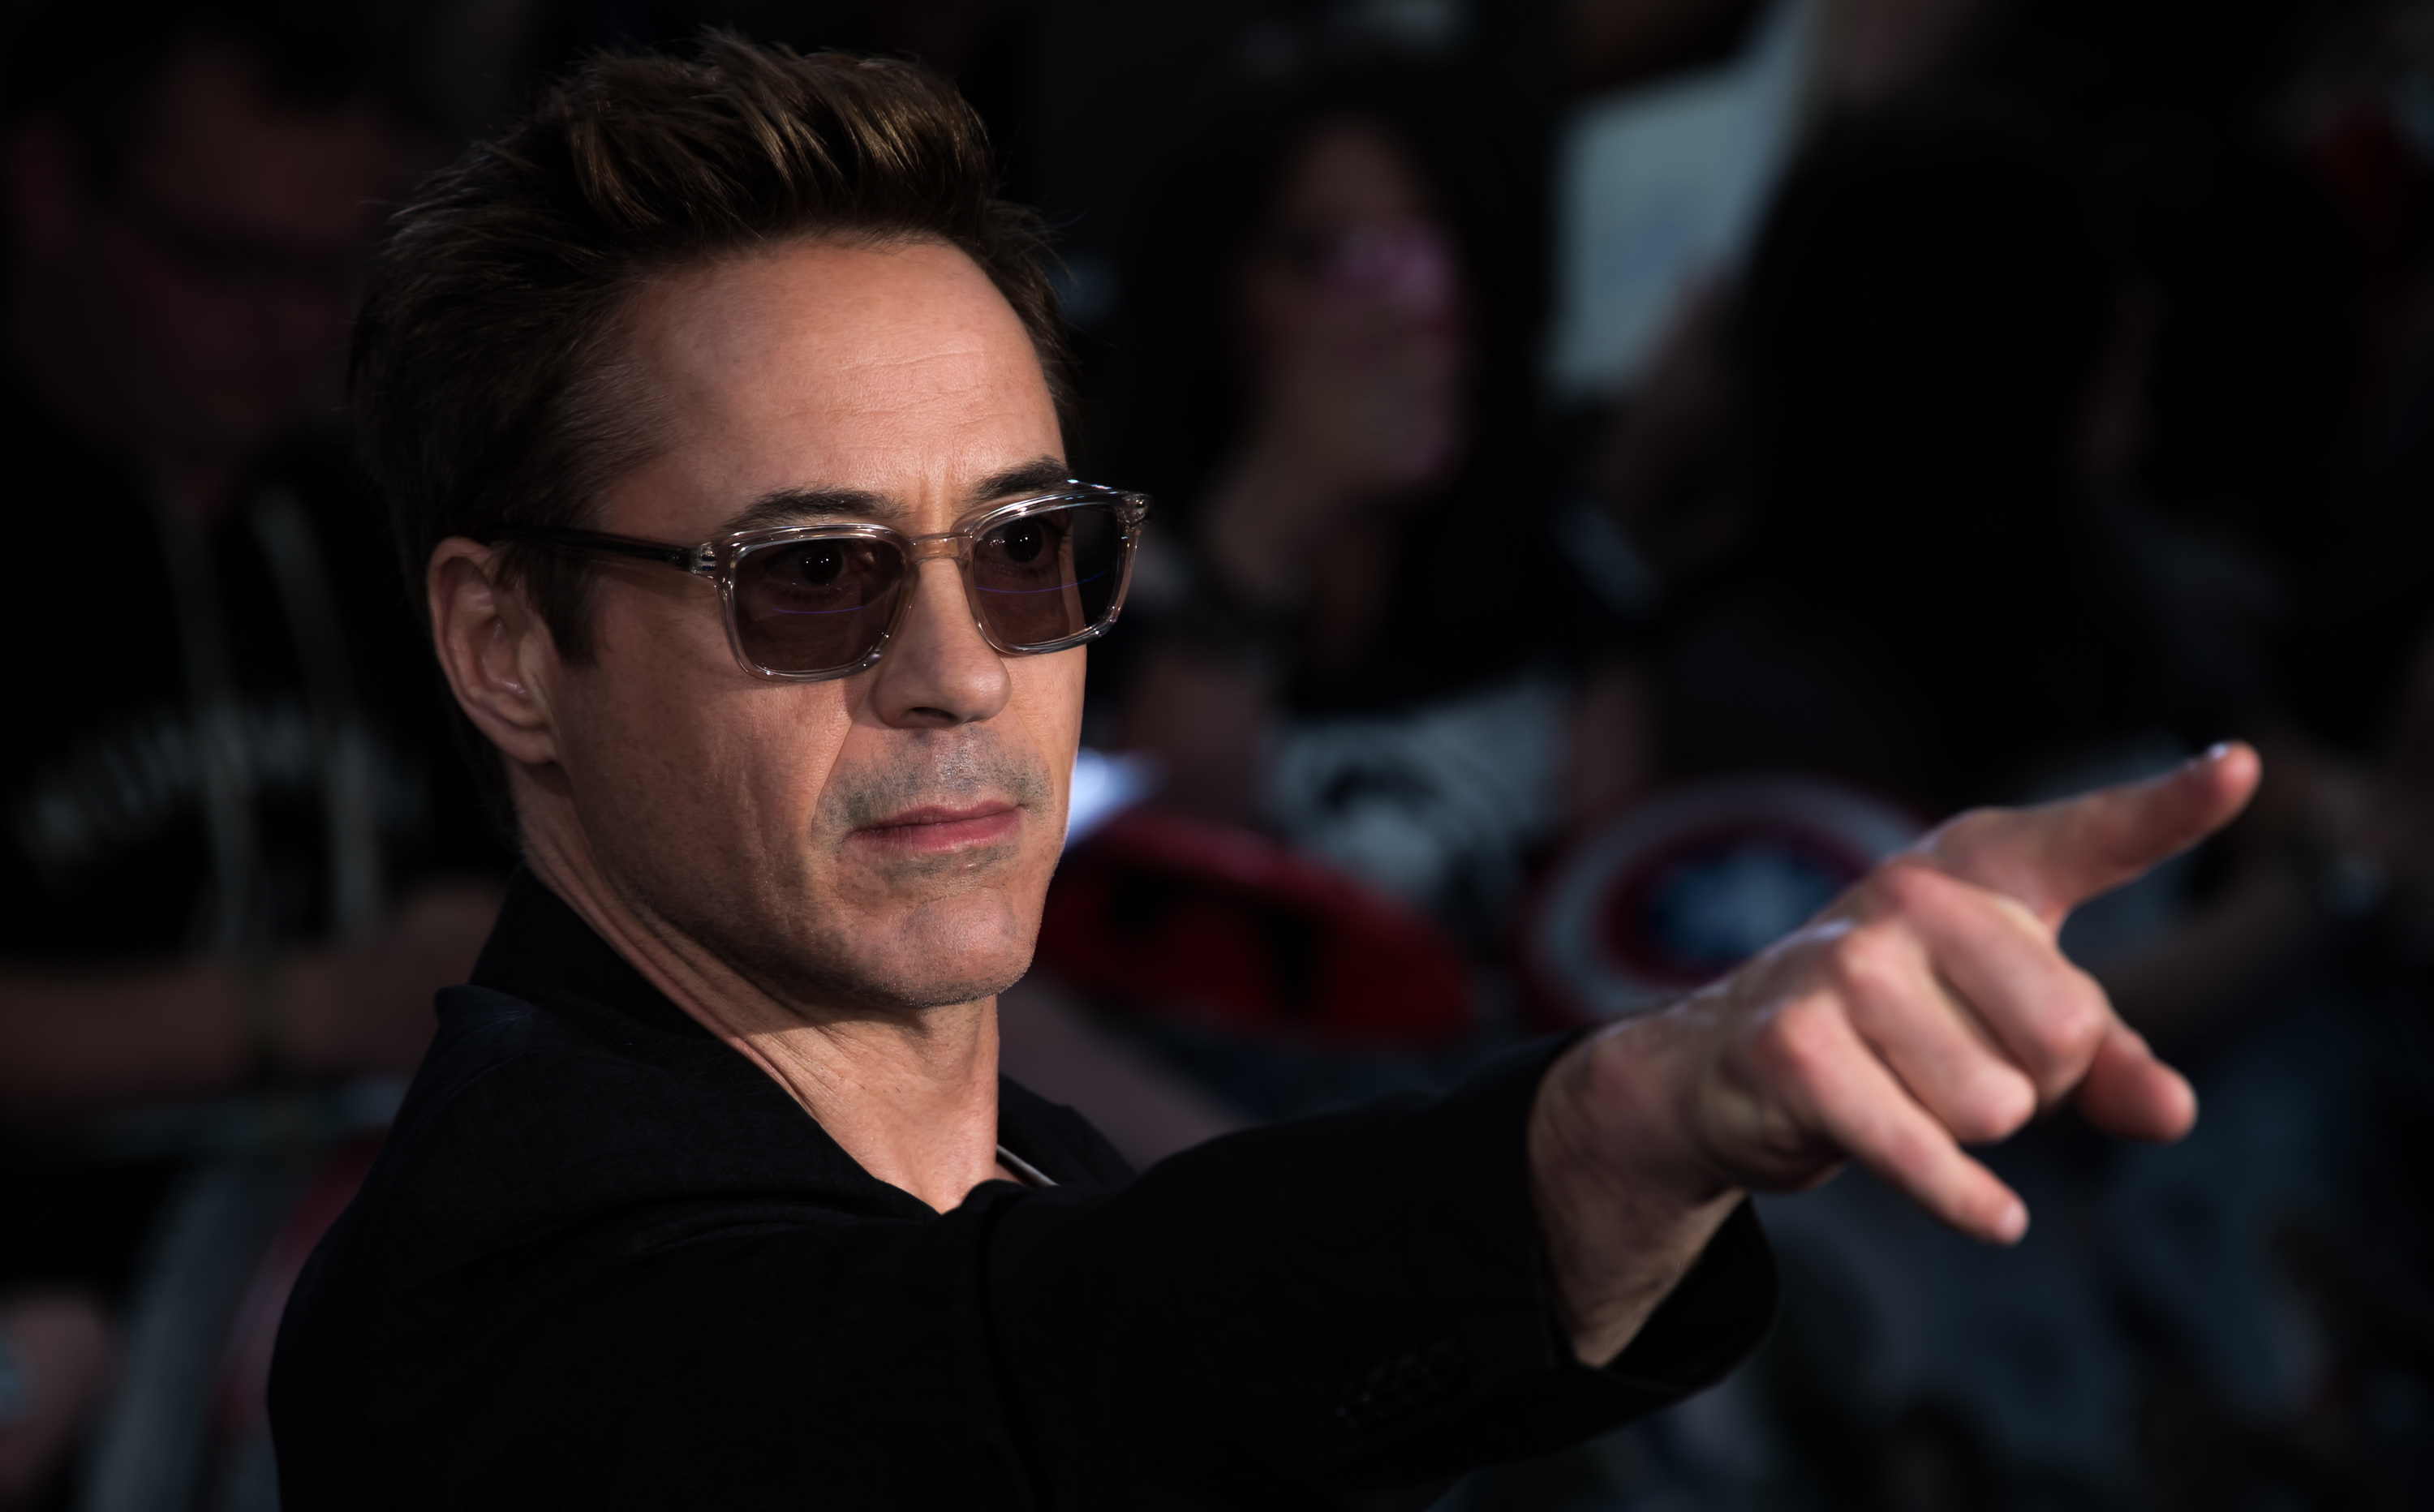 Robert Downey Jr. has changed his mind about another Iron Man movie again